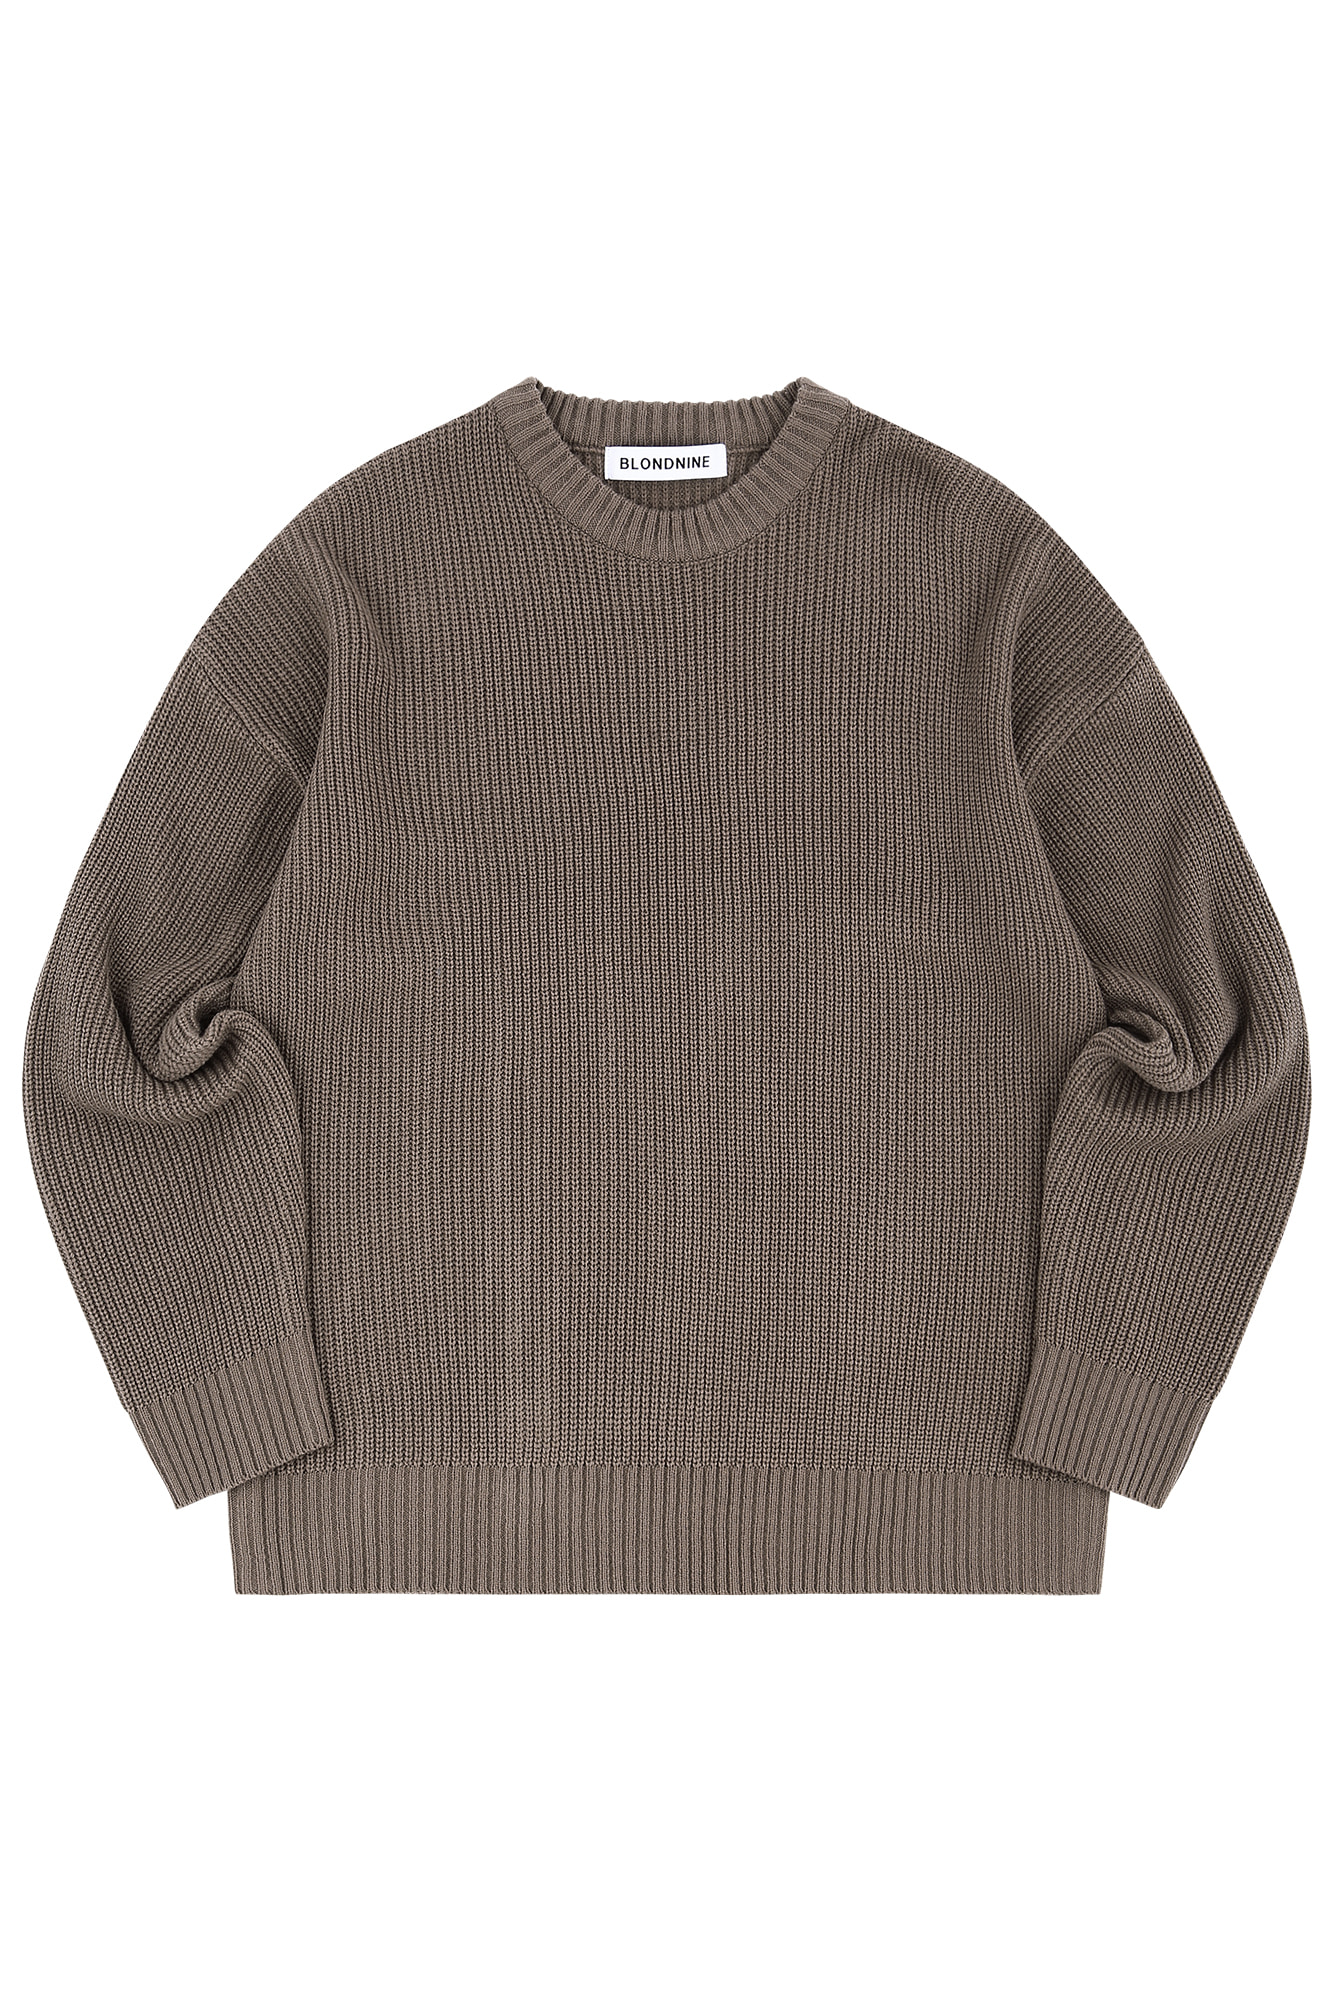 CREW NECK RIB KNIT SWEATER_BROWN